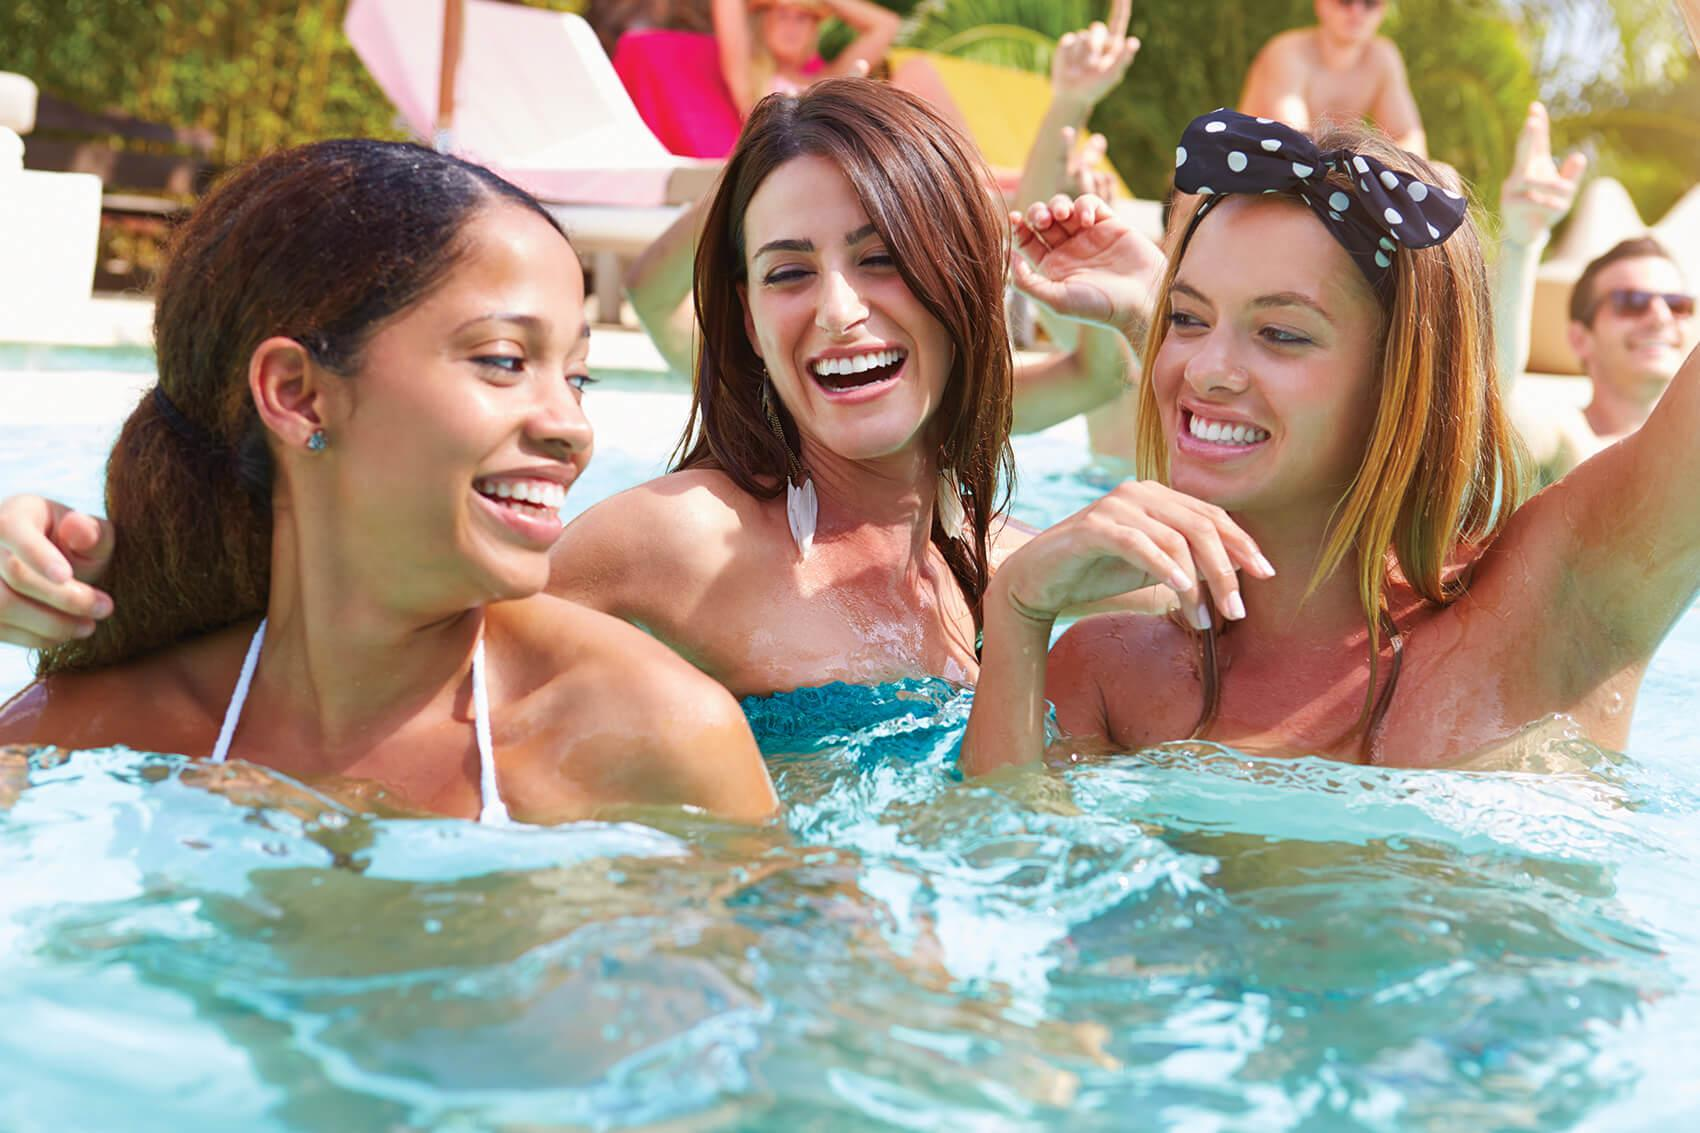 amenities-pool-3 ladies.jpg